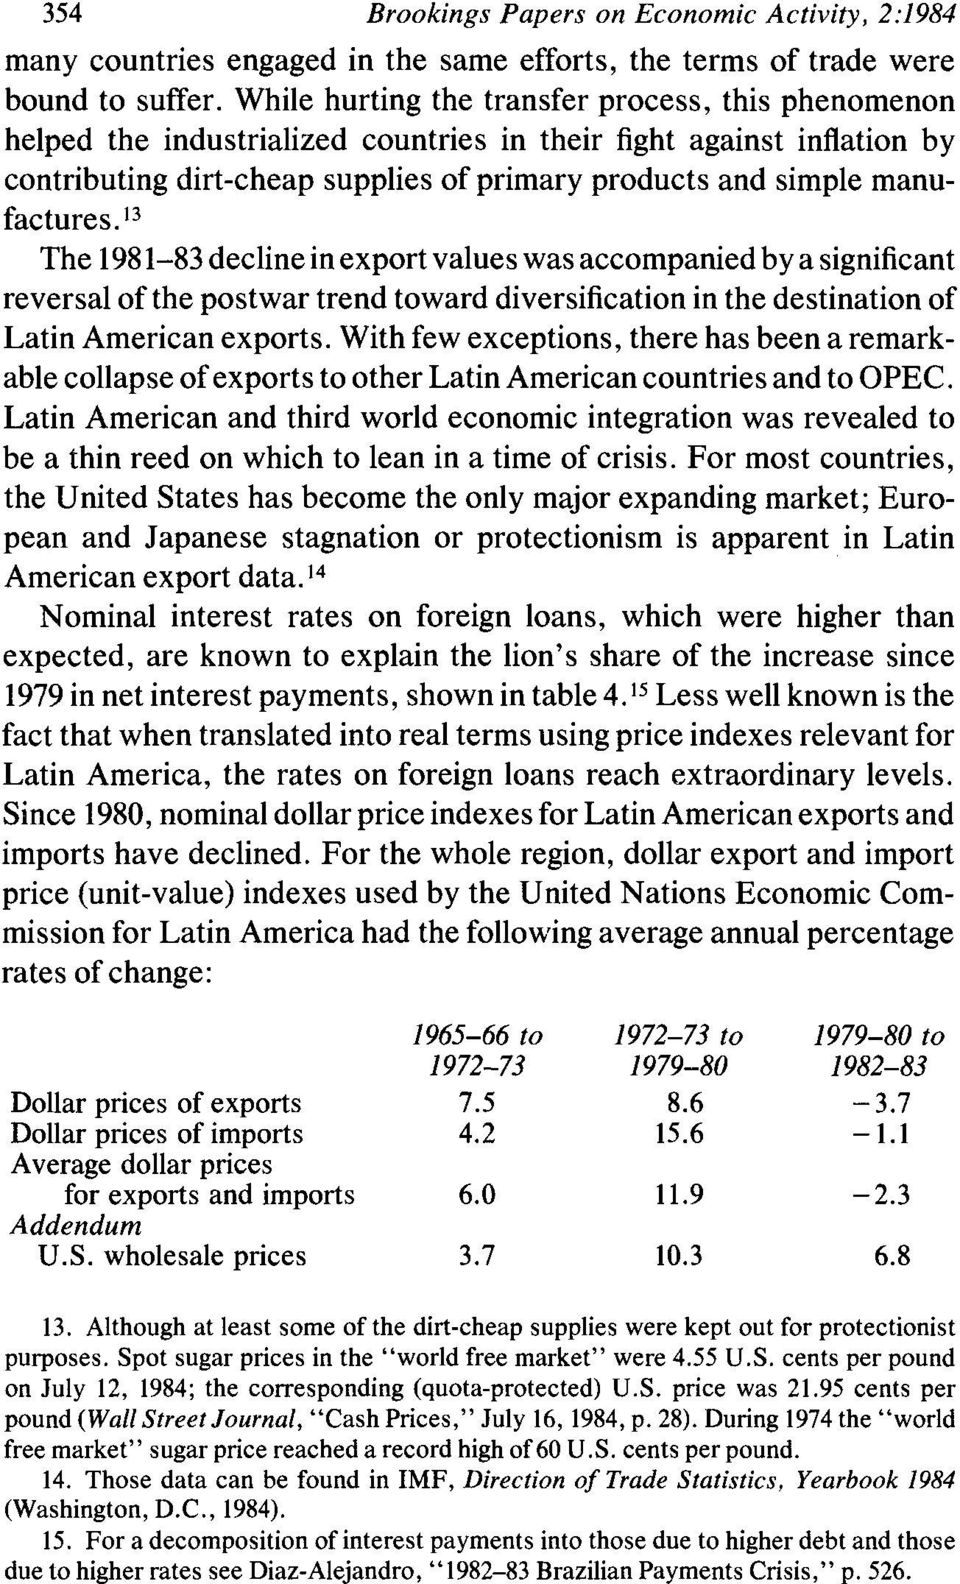 manufactures. 13 The 1981-83 decline in export values was accompanied by a significant reversal of the postwar trend toward diversification in the destination of Latin American exports.